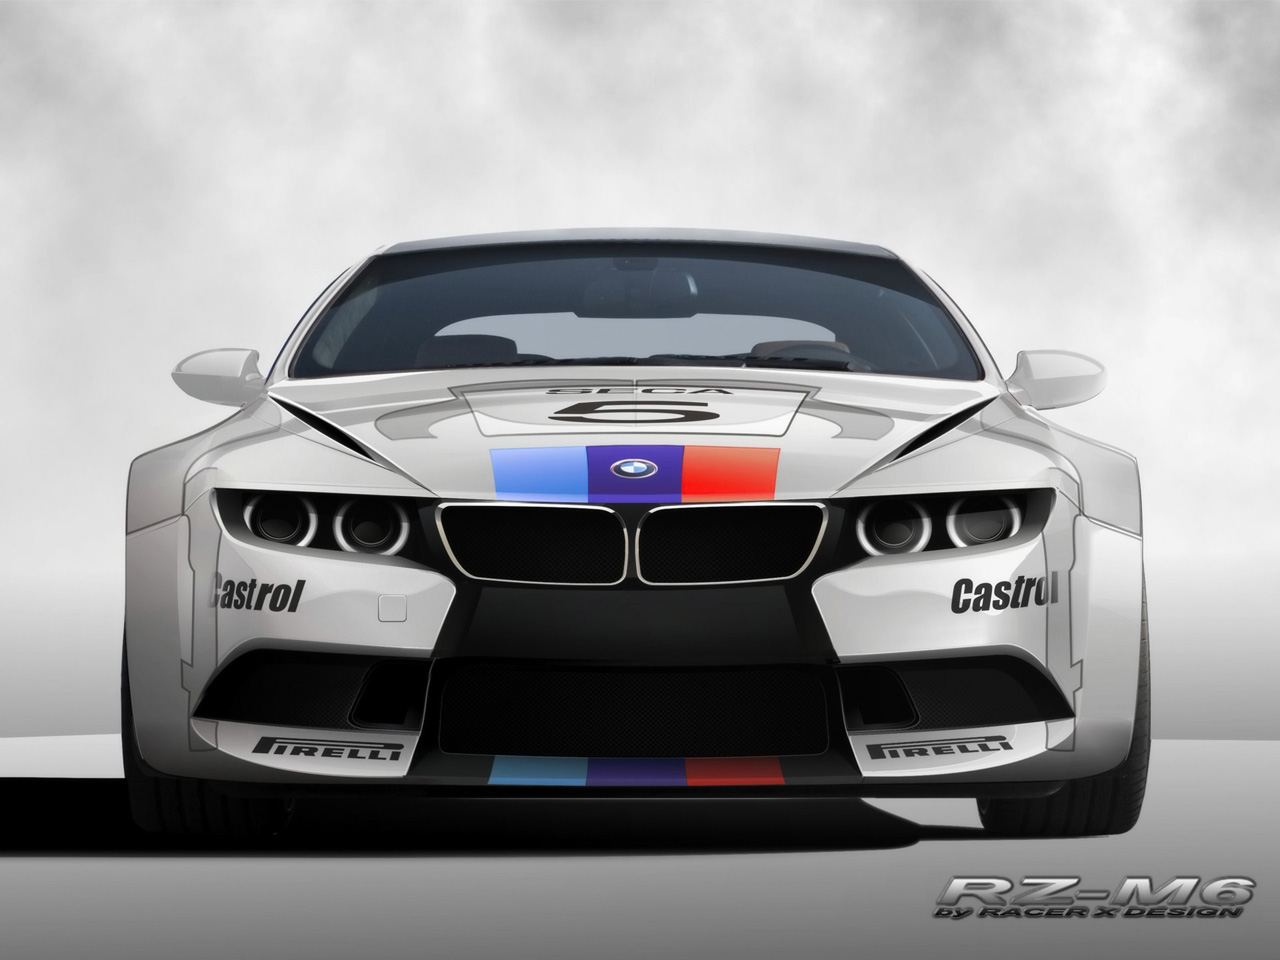 FREE HD PHOTO GALLERY BMW Cars HD Wallpapers 1 1280x960